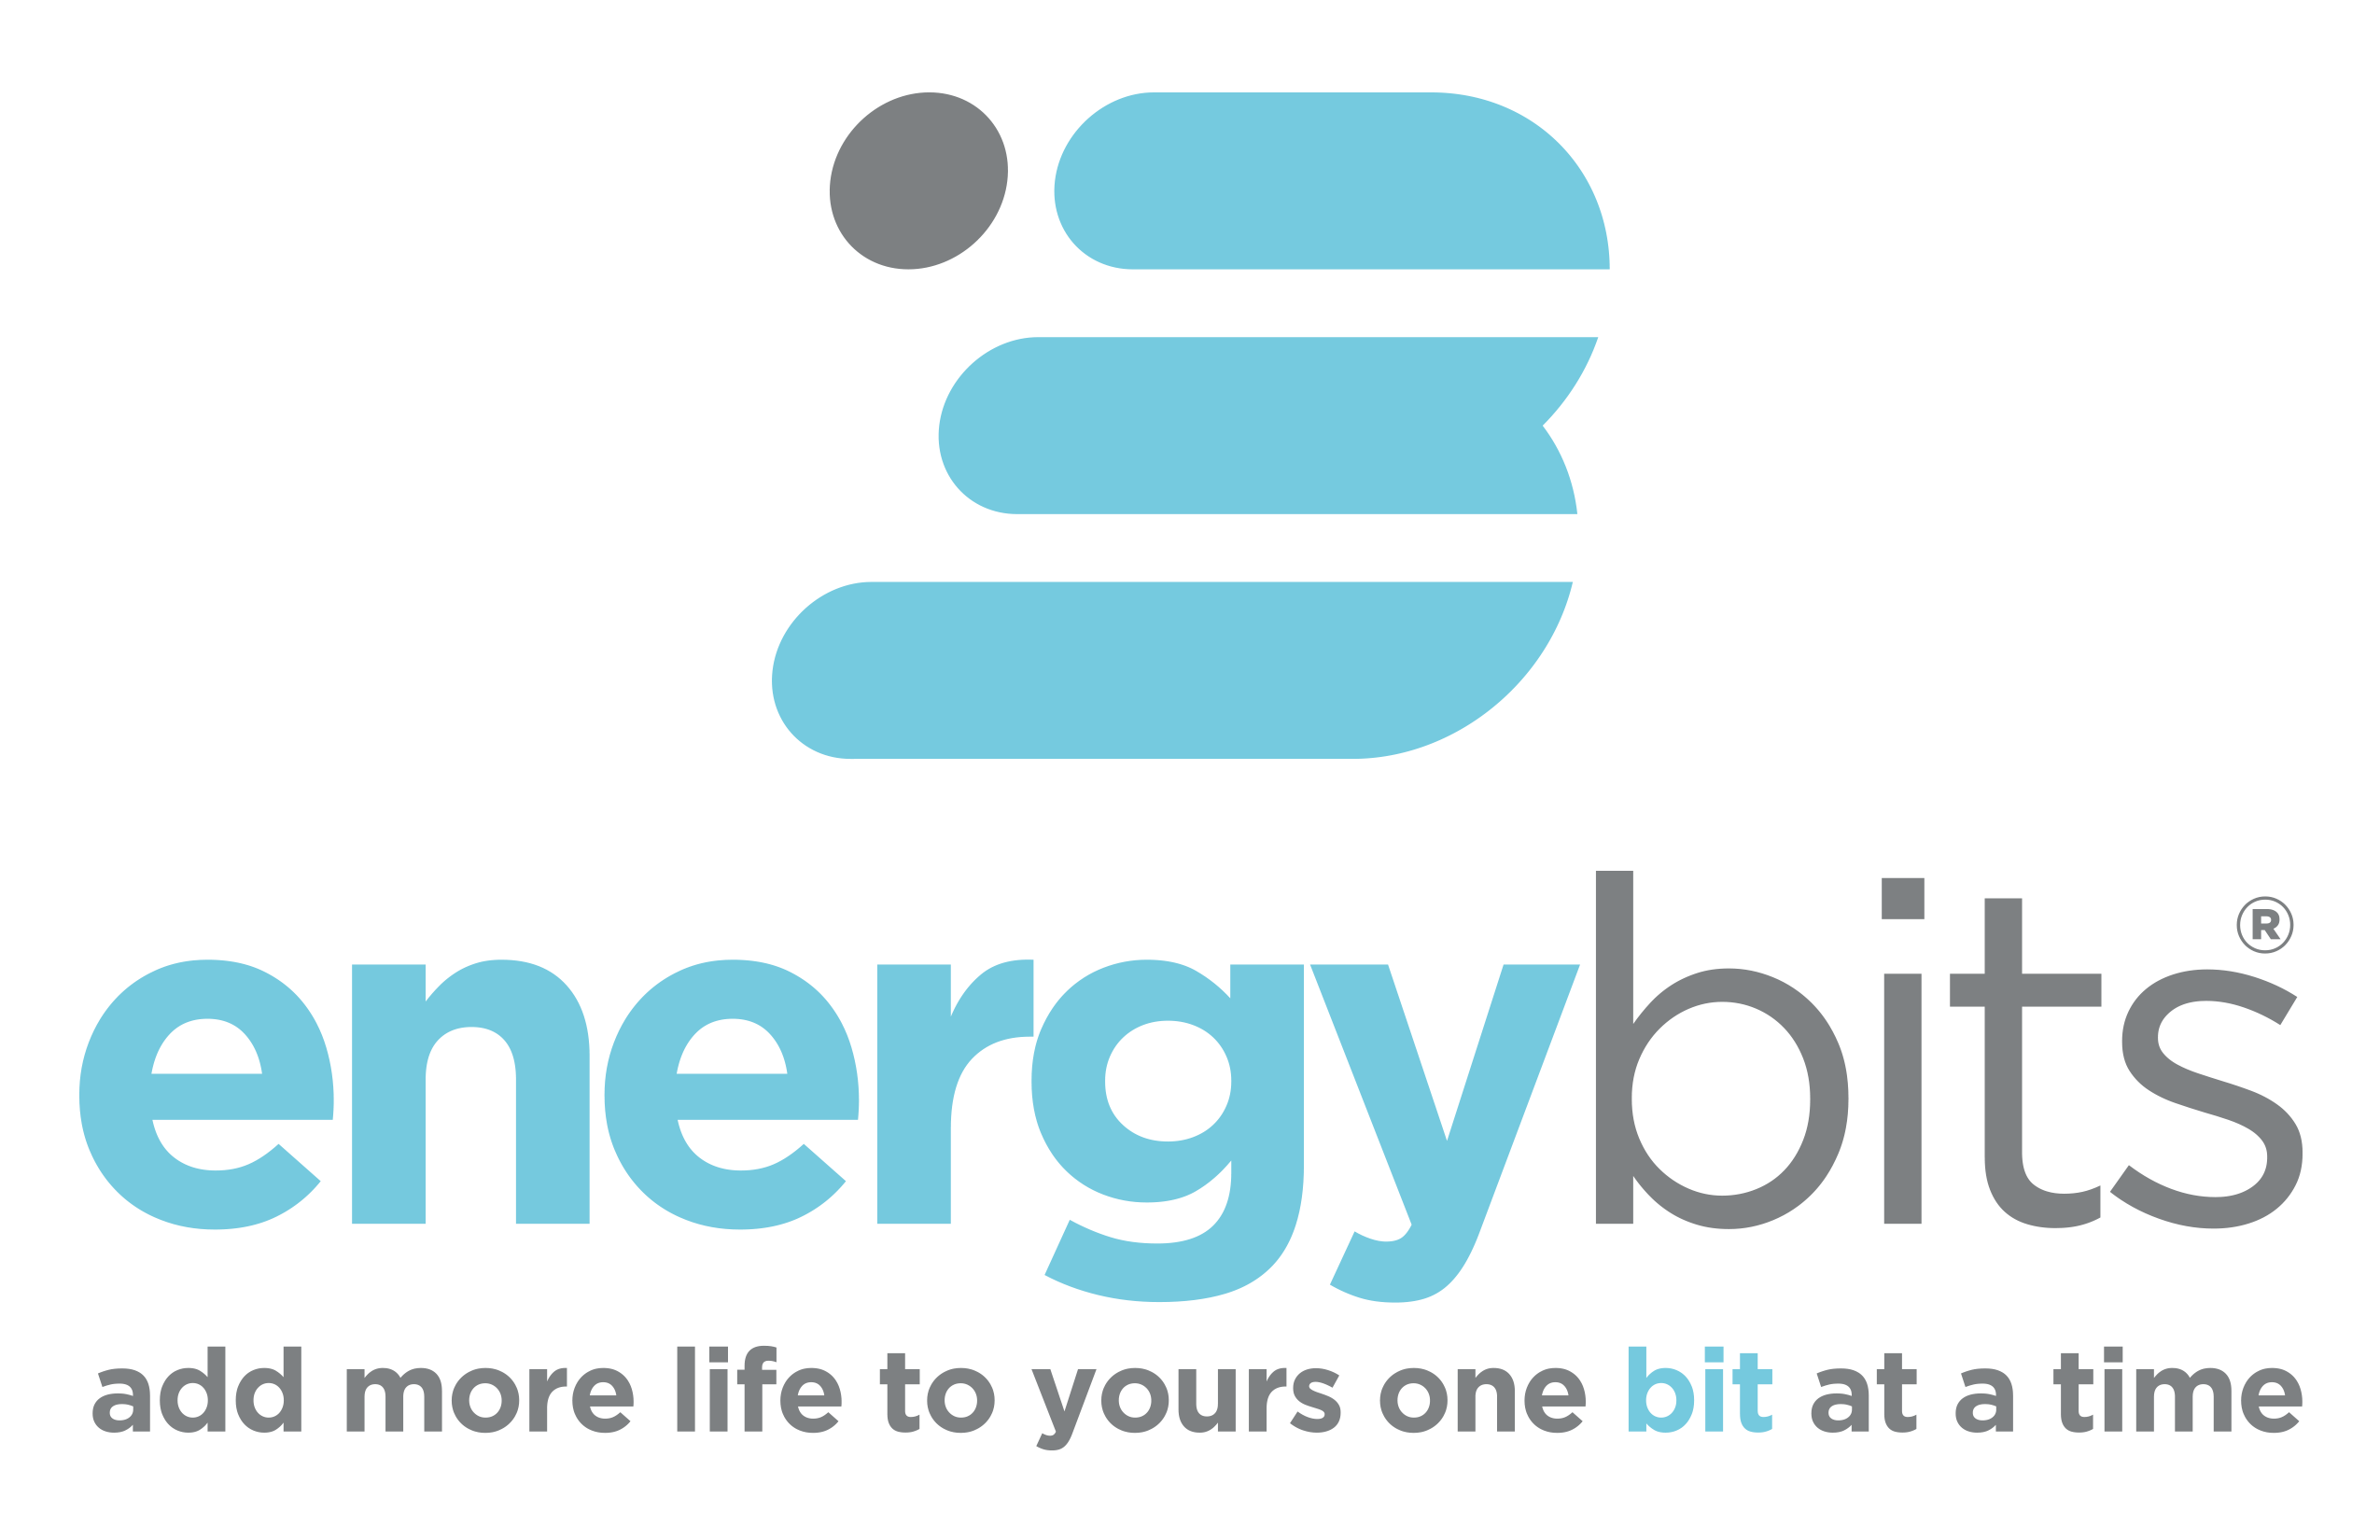 ENERGYbits Logos, Images, and Information   ENERGYbits®